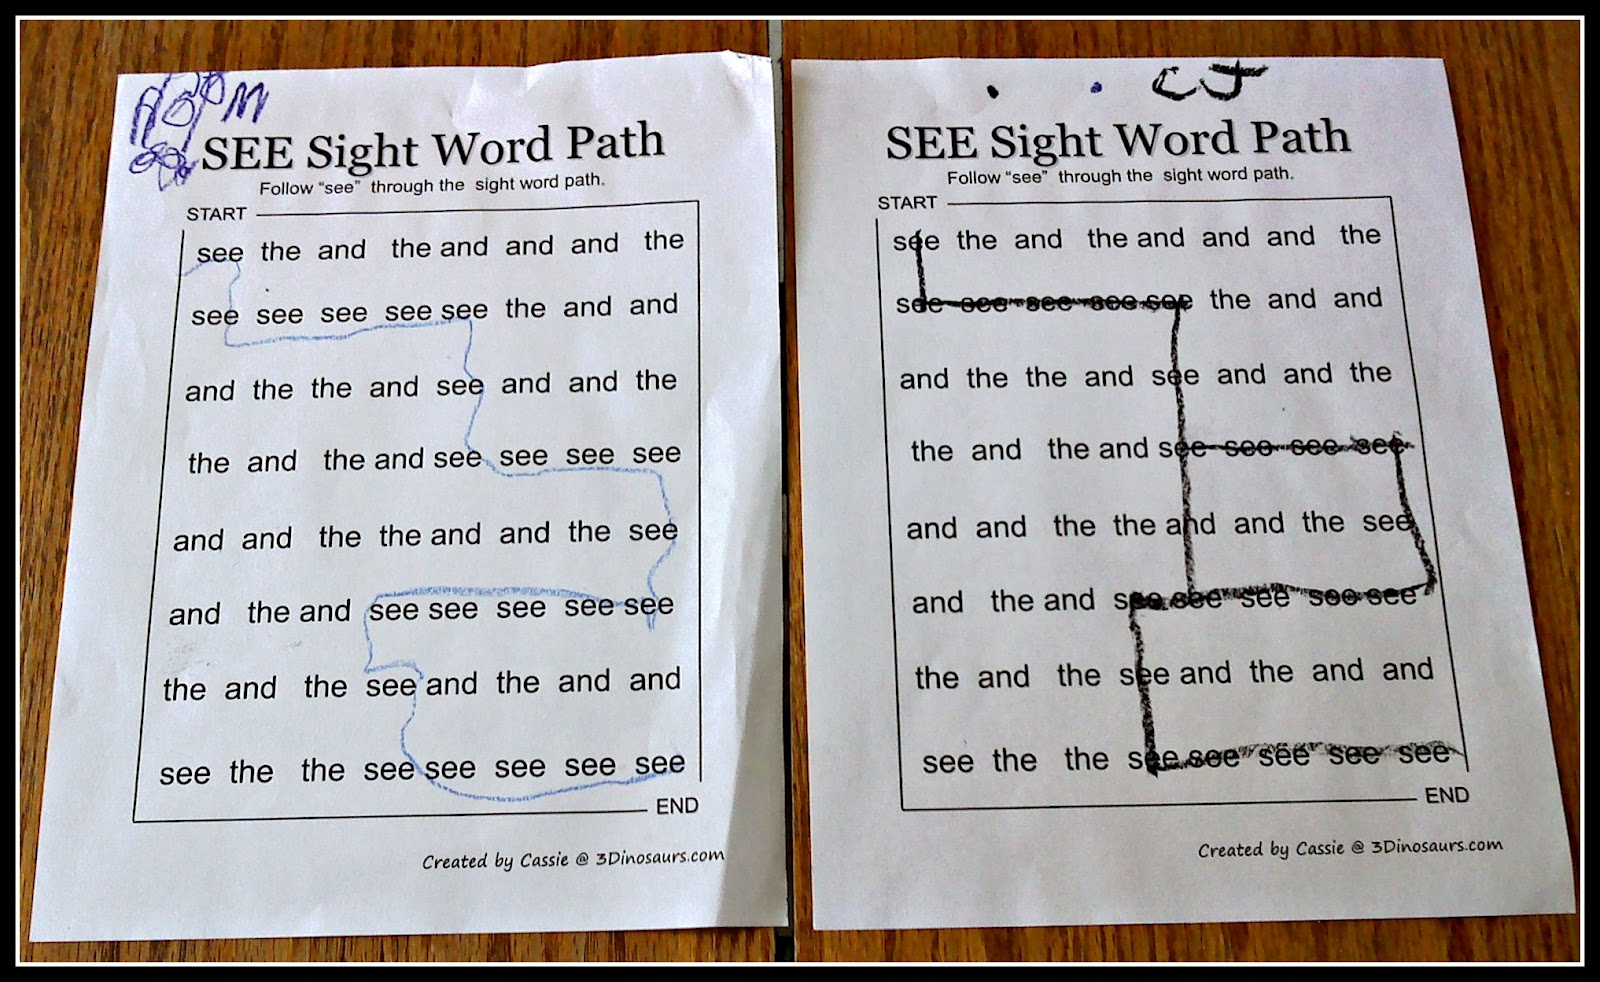 Daily Day Acre: word worksheets  The sight Walnut Home a free Just Walnut Acre at   Nice